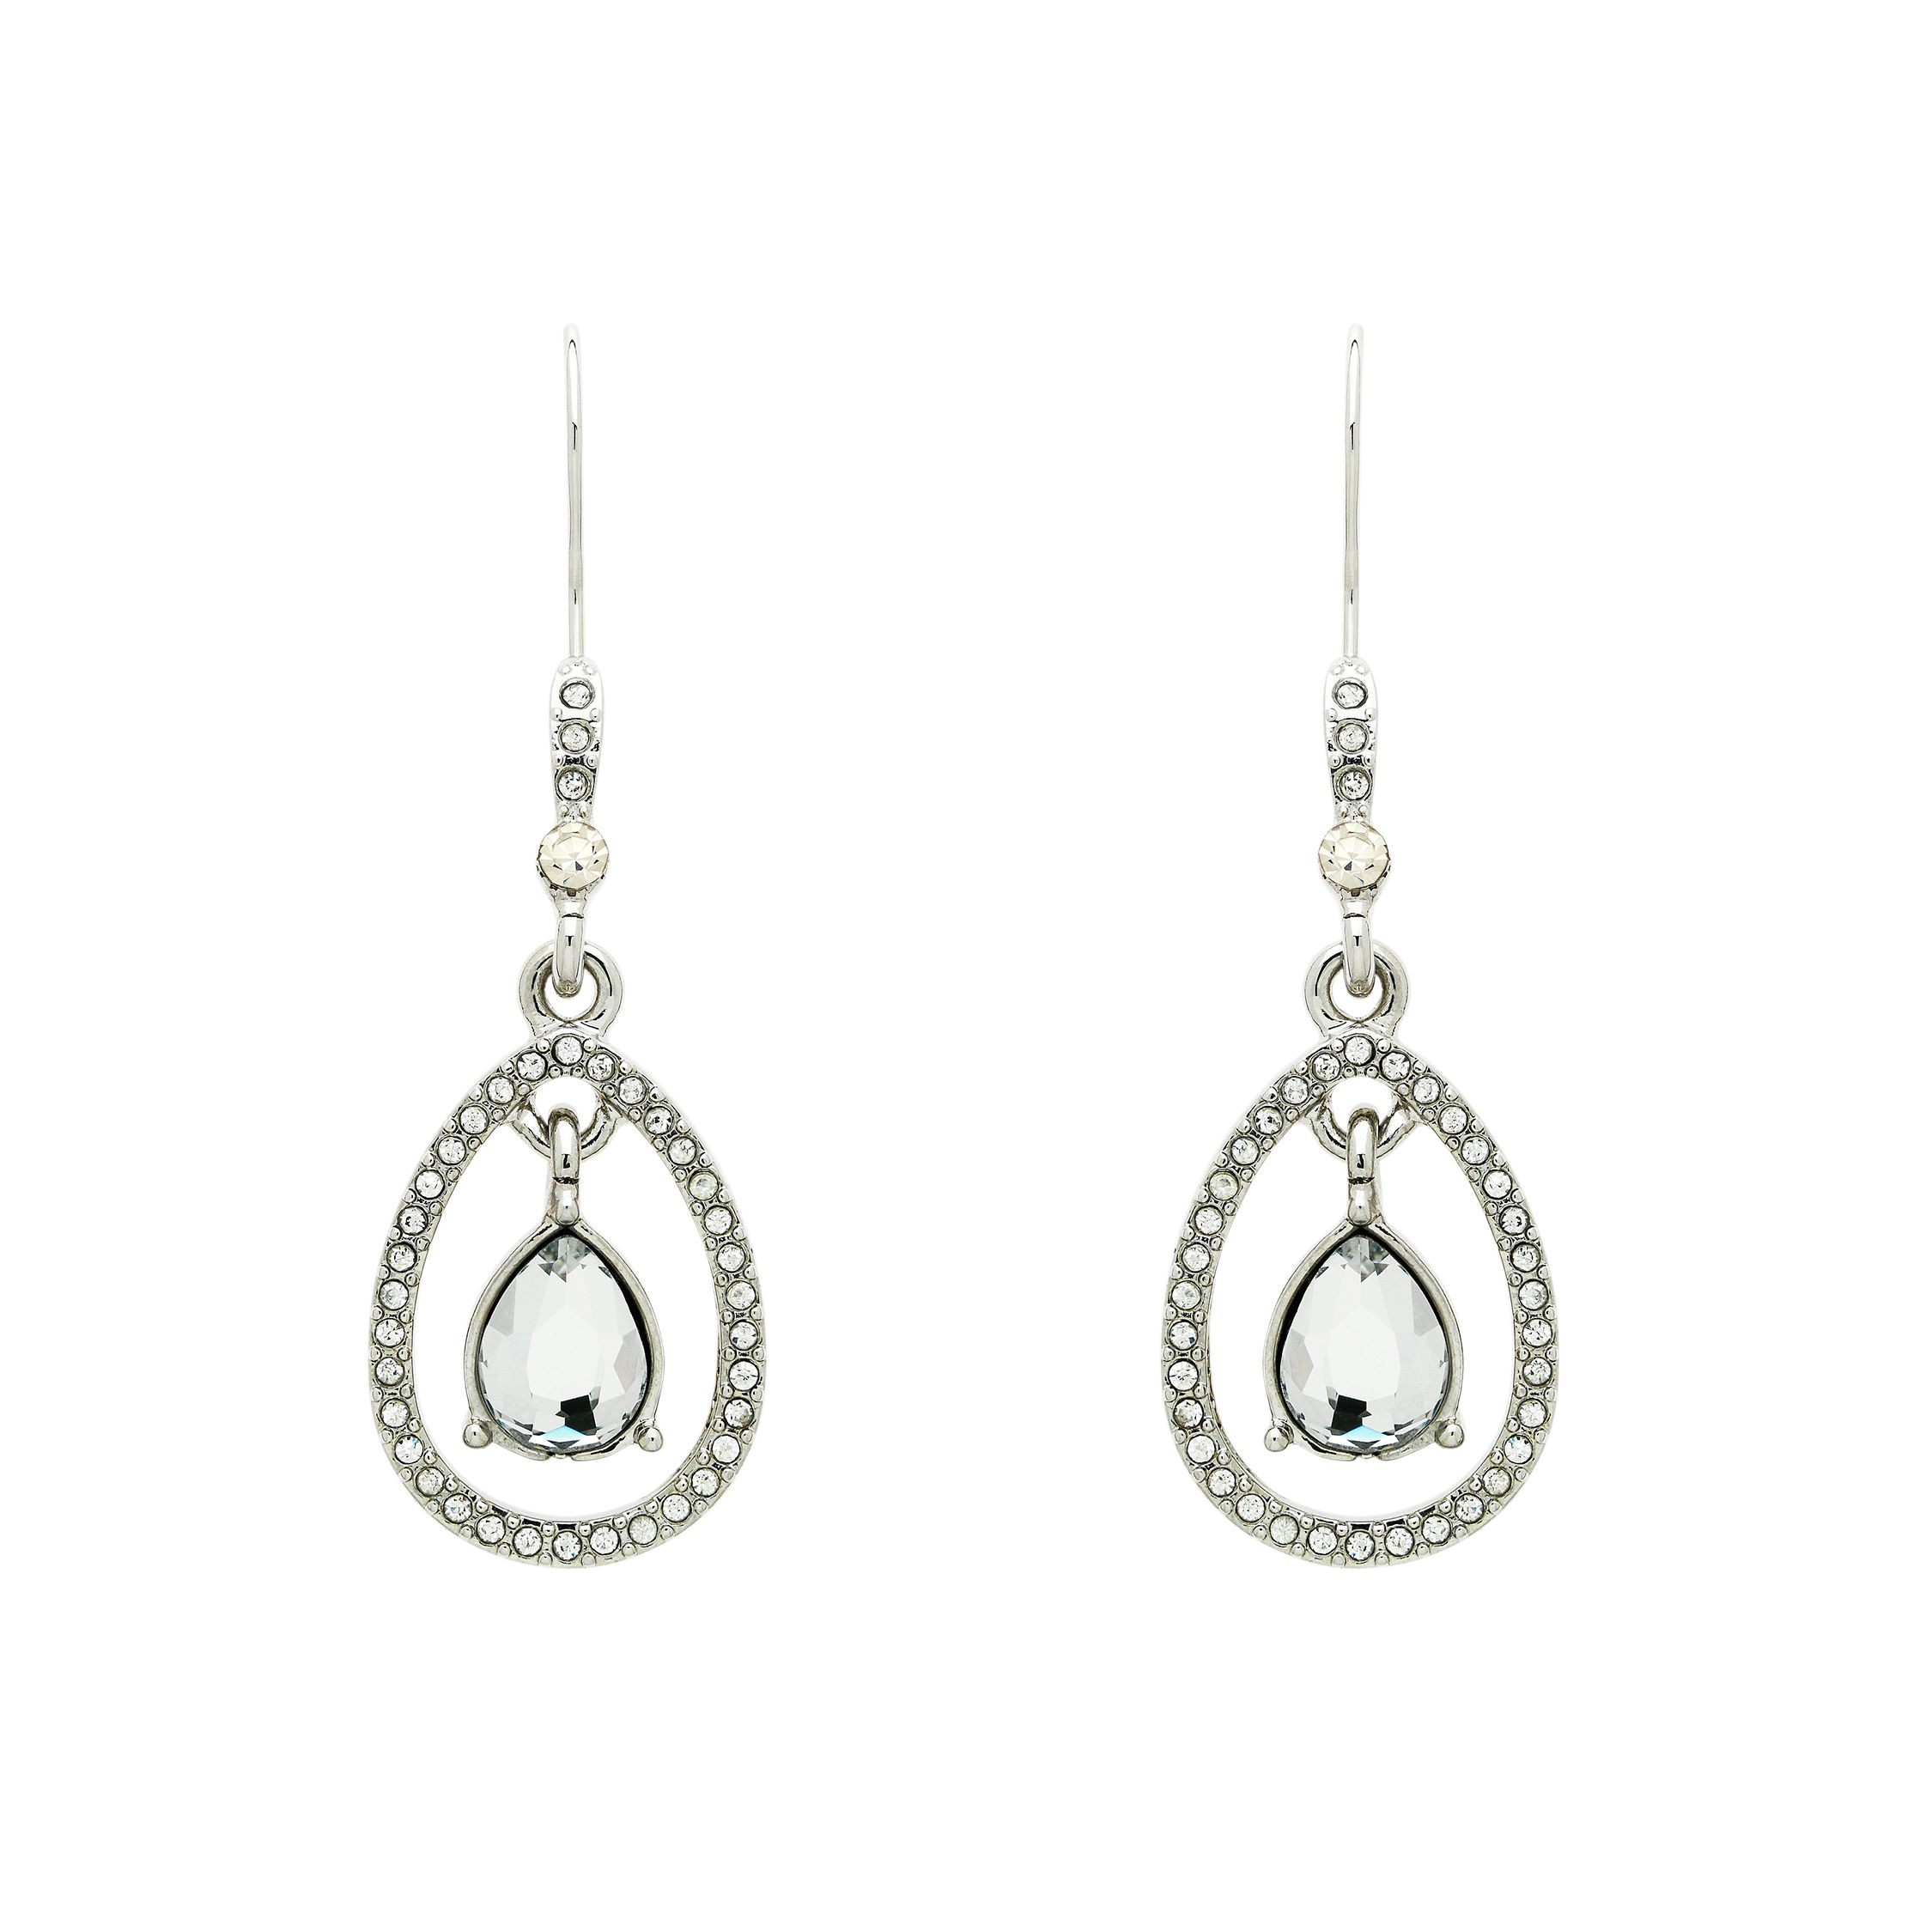 Monet Crystal Teardrop Open Earrings, N/A.